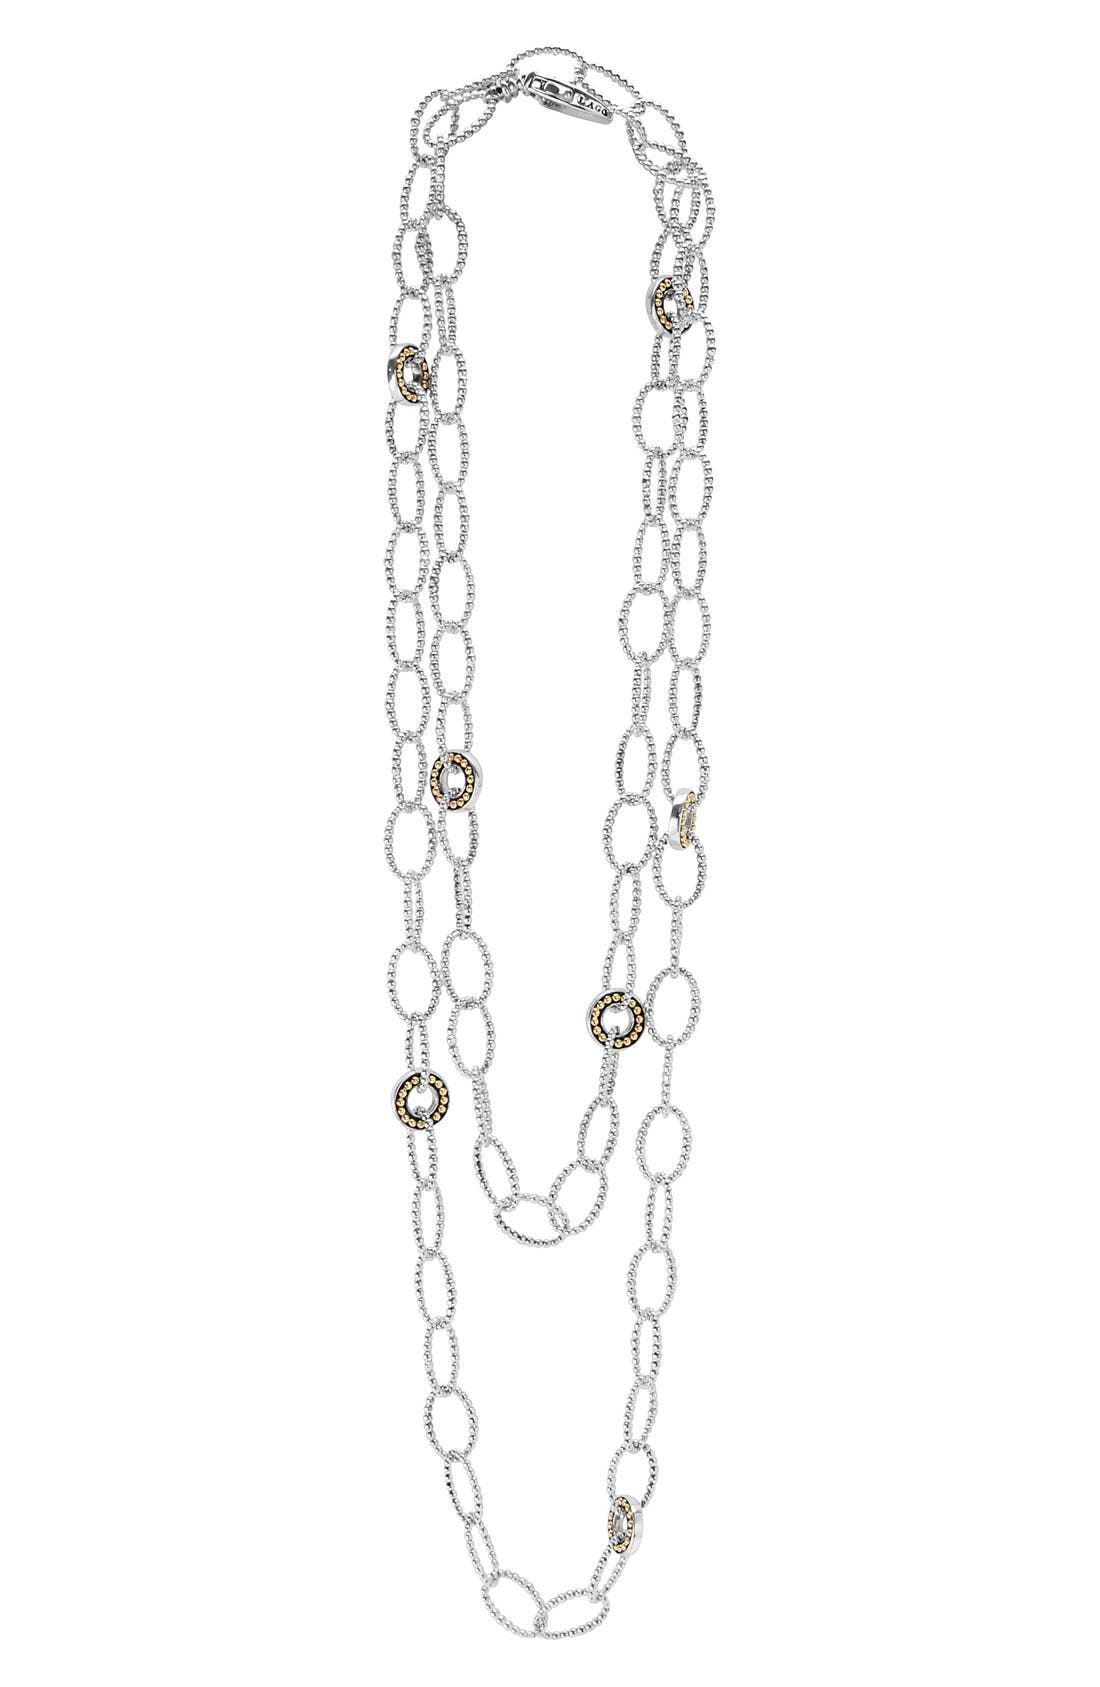 'Enso' Long Station Necklace,                         Main,                         color, Silver/ Gold